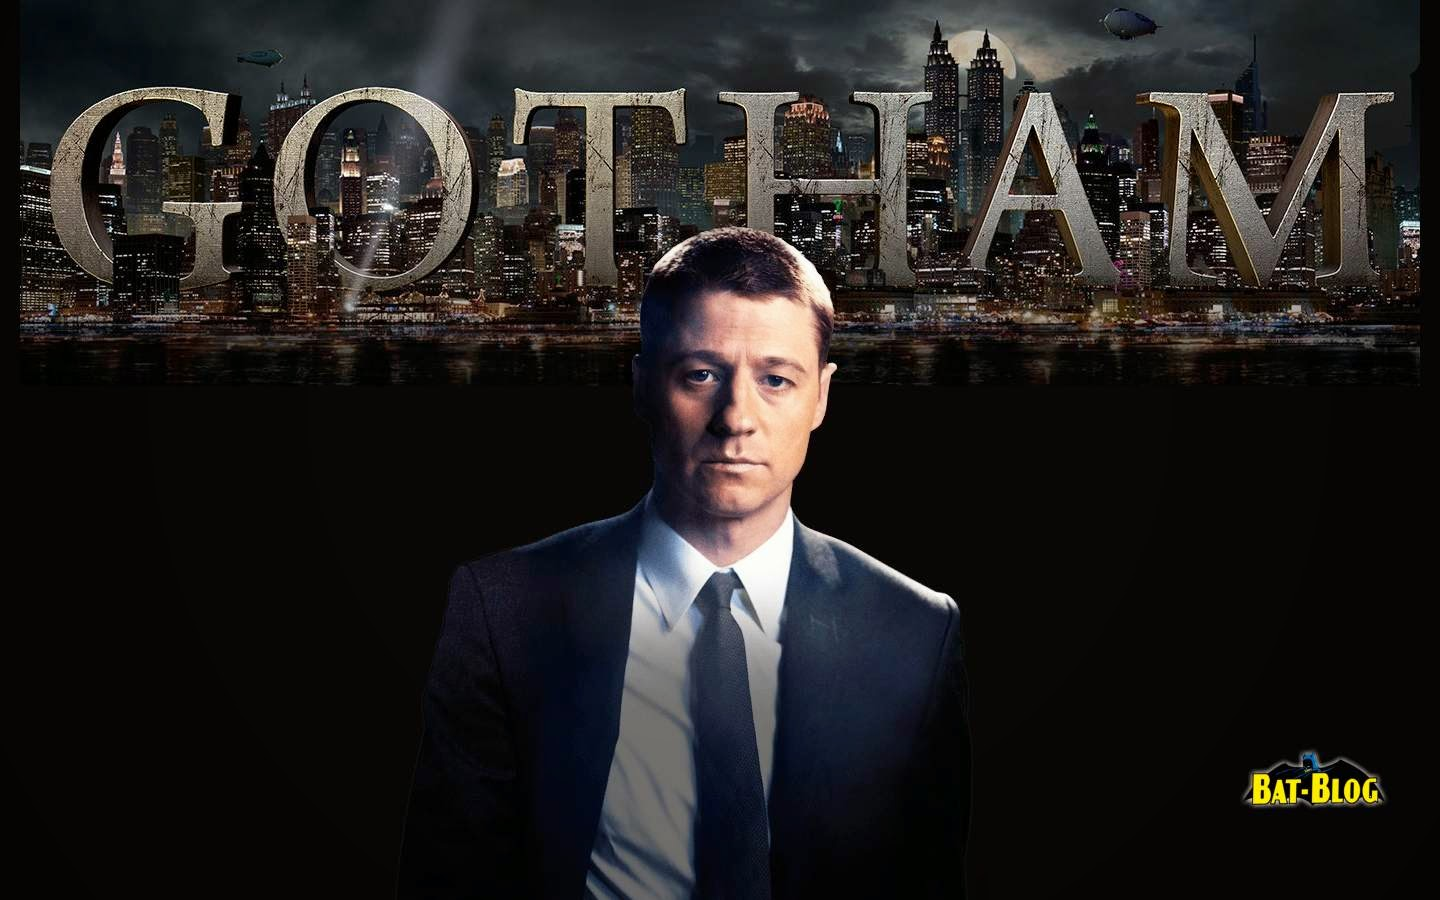 Gotham tv Show Wallpaper Batman's New Gotham tv Series